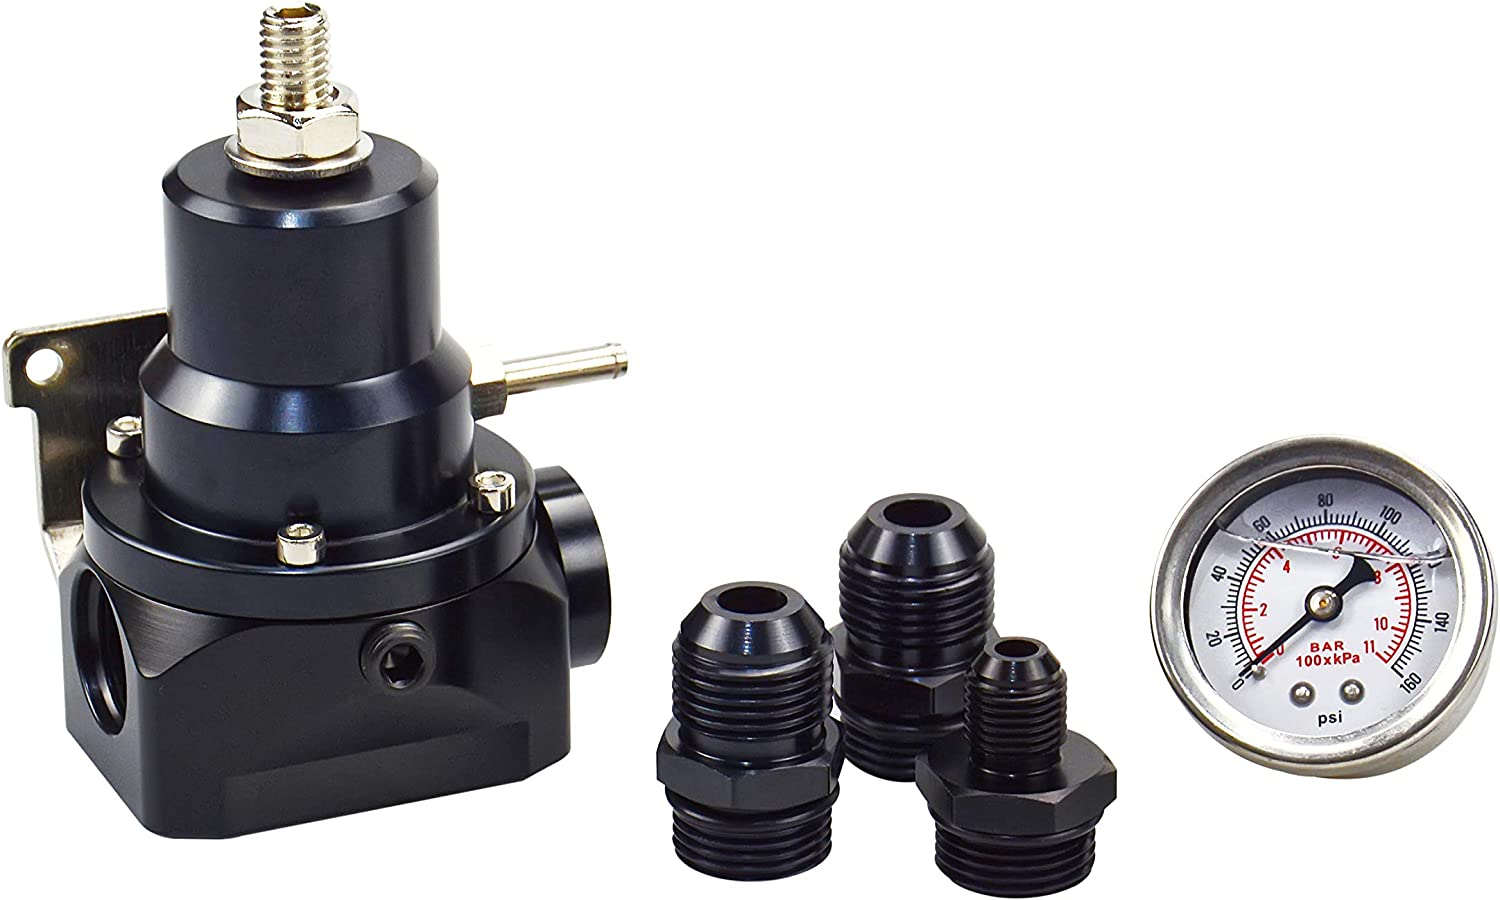 TASAN RACING Fuel Pressure Regulator with Feed Max 89% OFF AN6 AN10 Large discharge sale Gauge